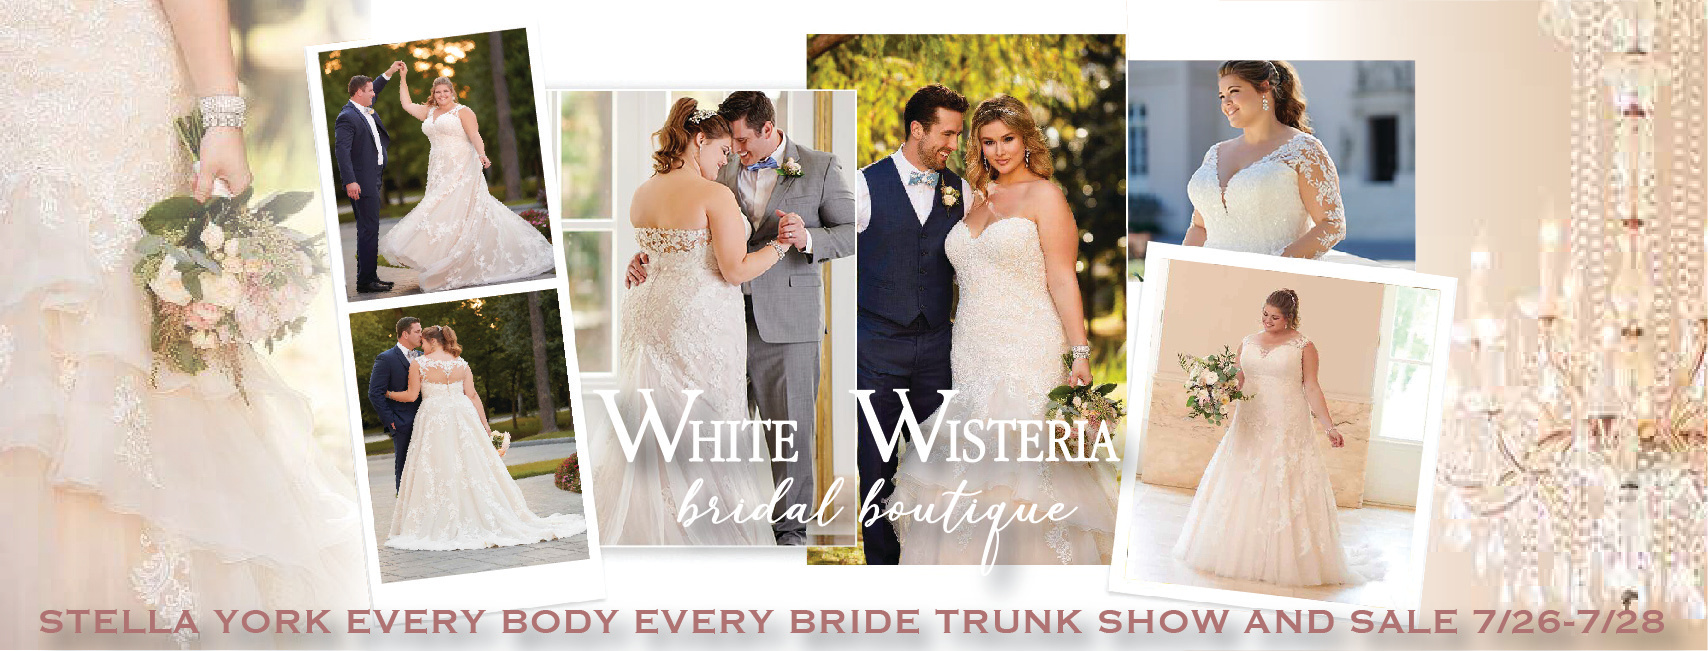 Stella York Every Body Every Bride Plus Size Trunk Show And Sale